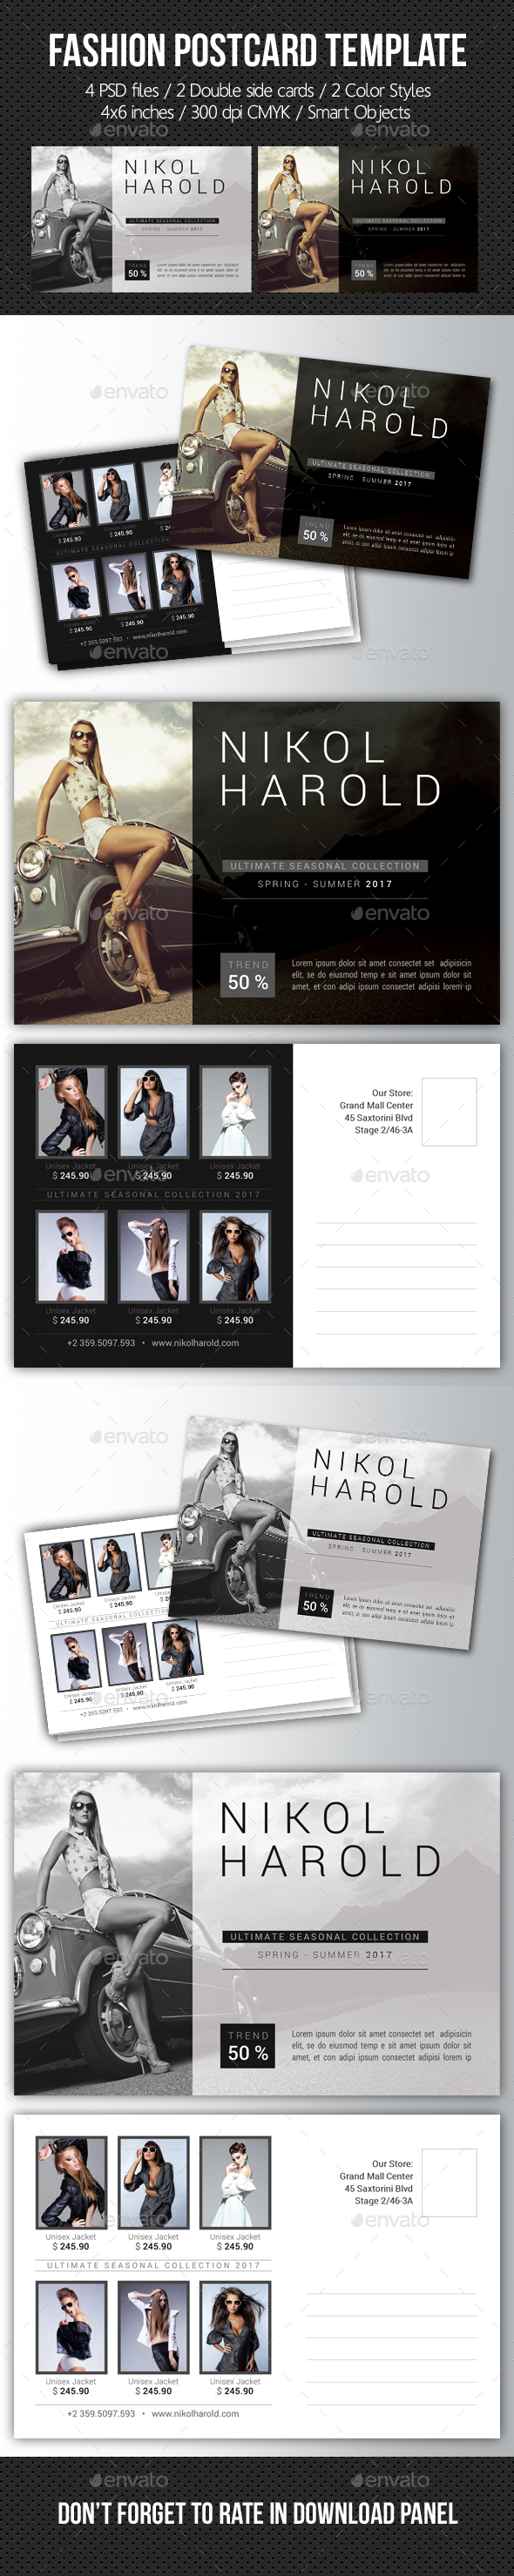 Fashion Postcard Template - Cards & Invites Print Templates